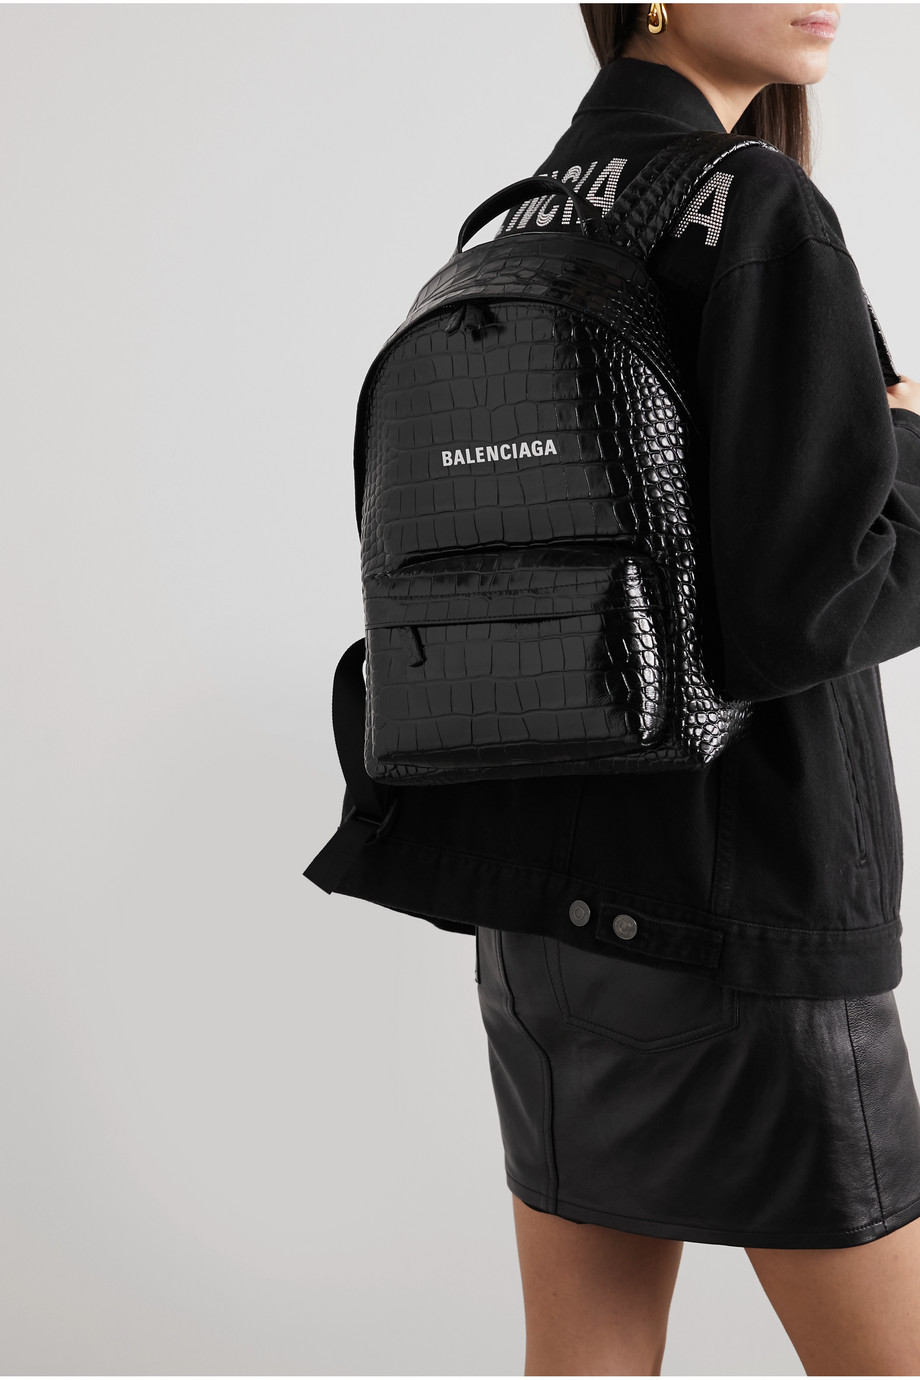 BALENCIAGA Everyday croc-effect leather backpack